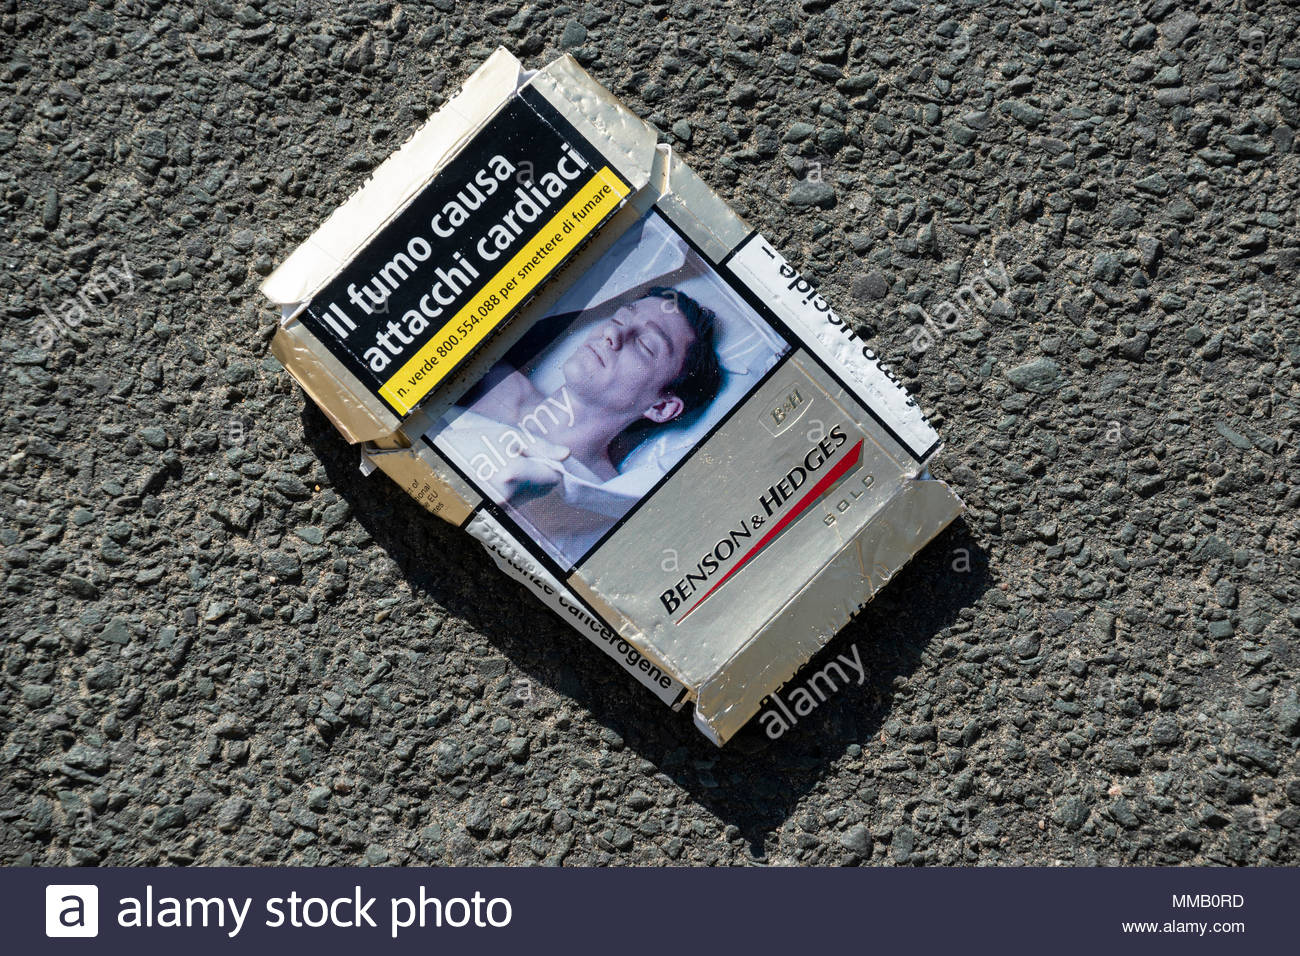 Discarded cigarette packet with the wording Il Fumo Causa Attacchi Cardiaci, Dorset, England, UK - Stock Image